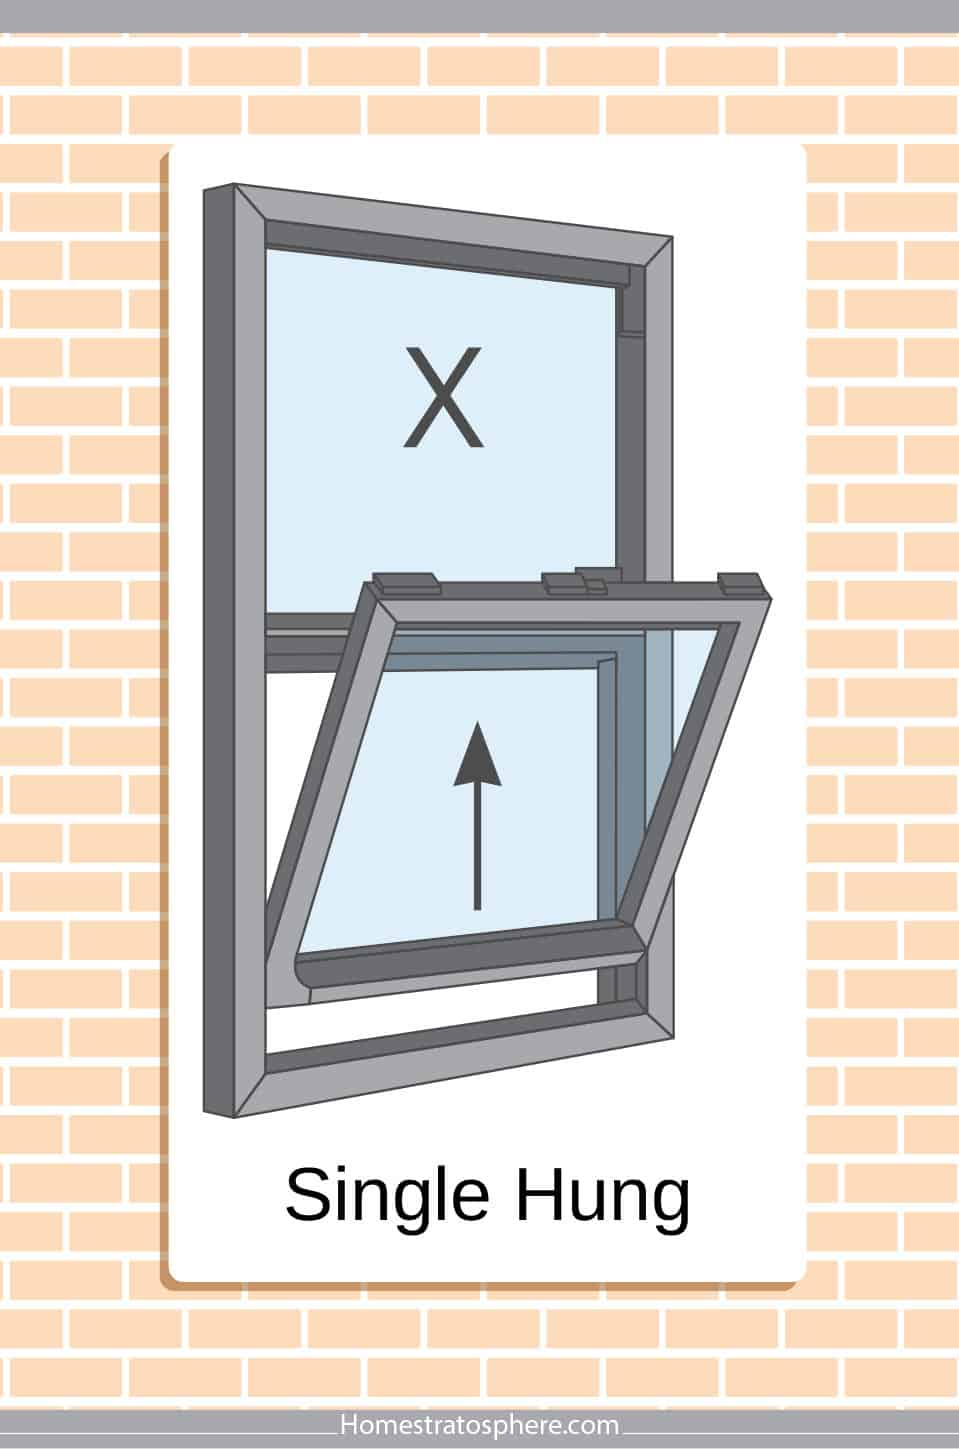 1 Single Hung Window